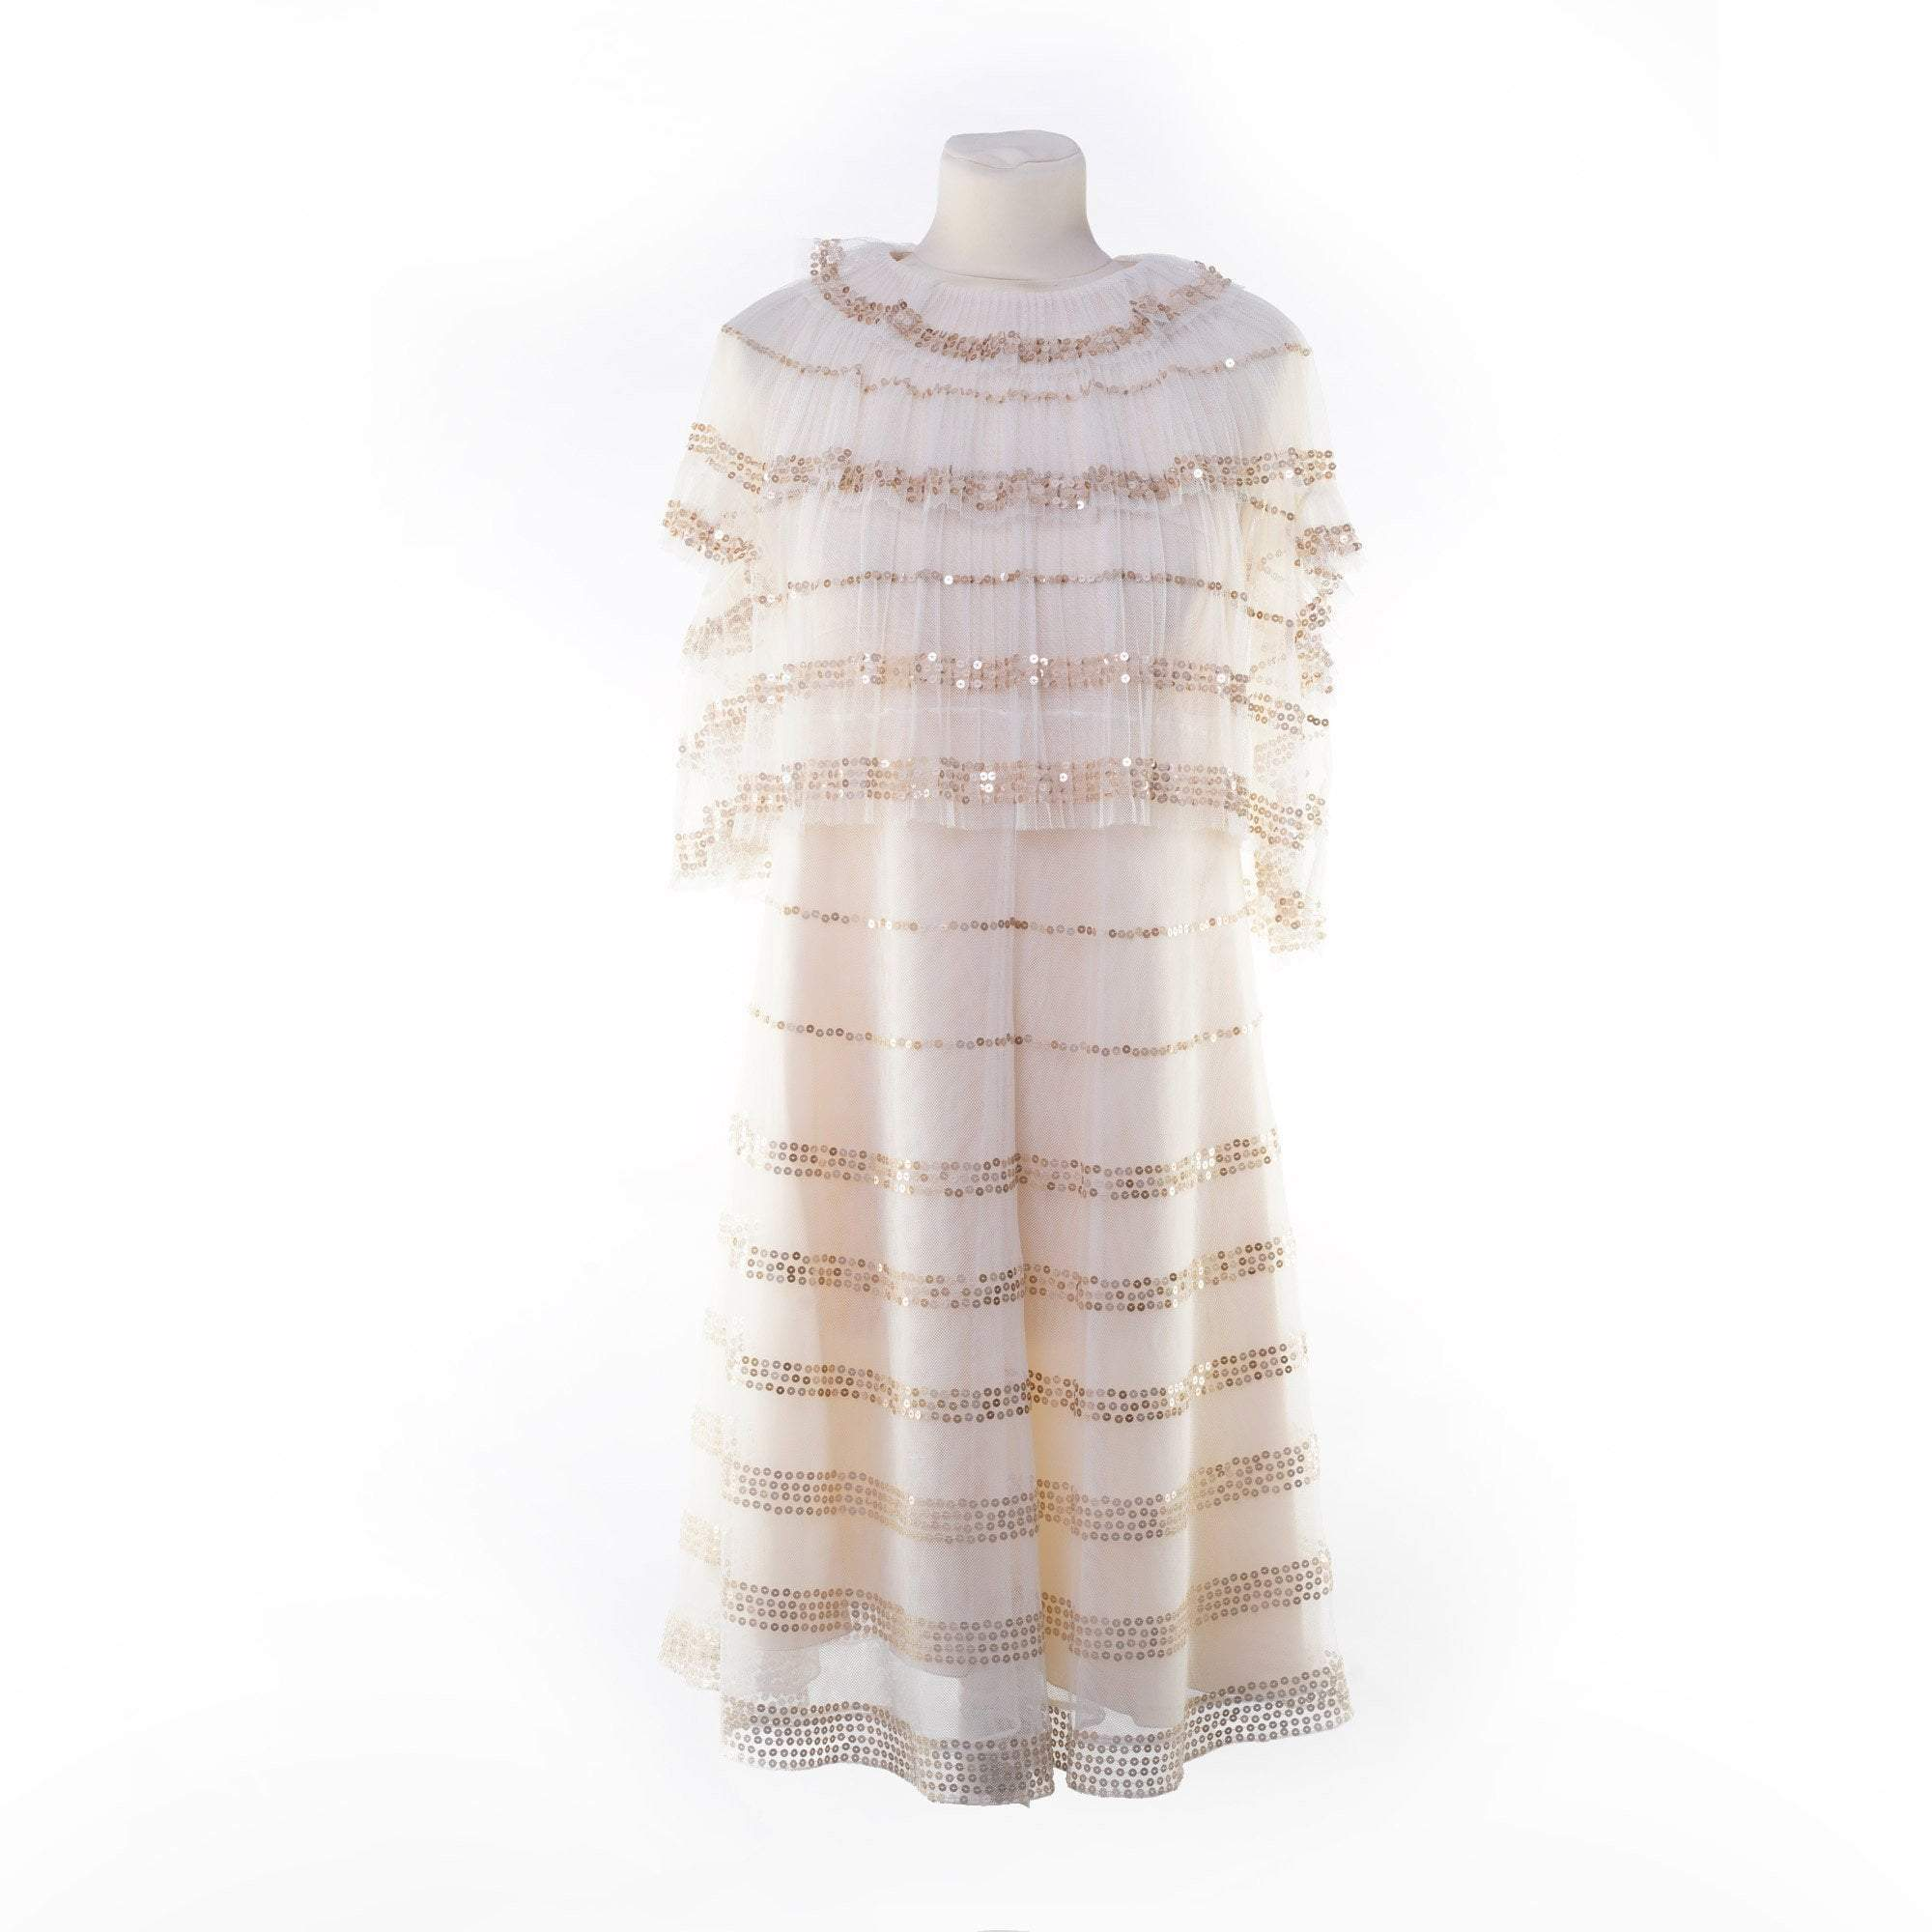 Chloé Tulle Layered Dress with Sequin